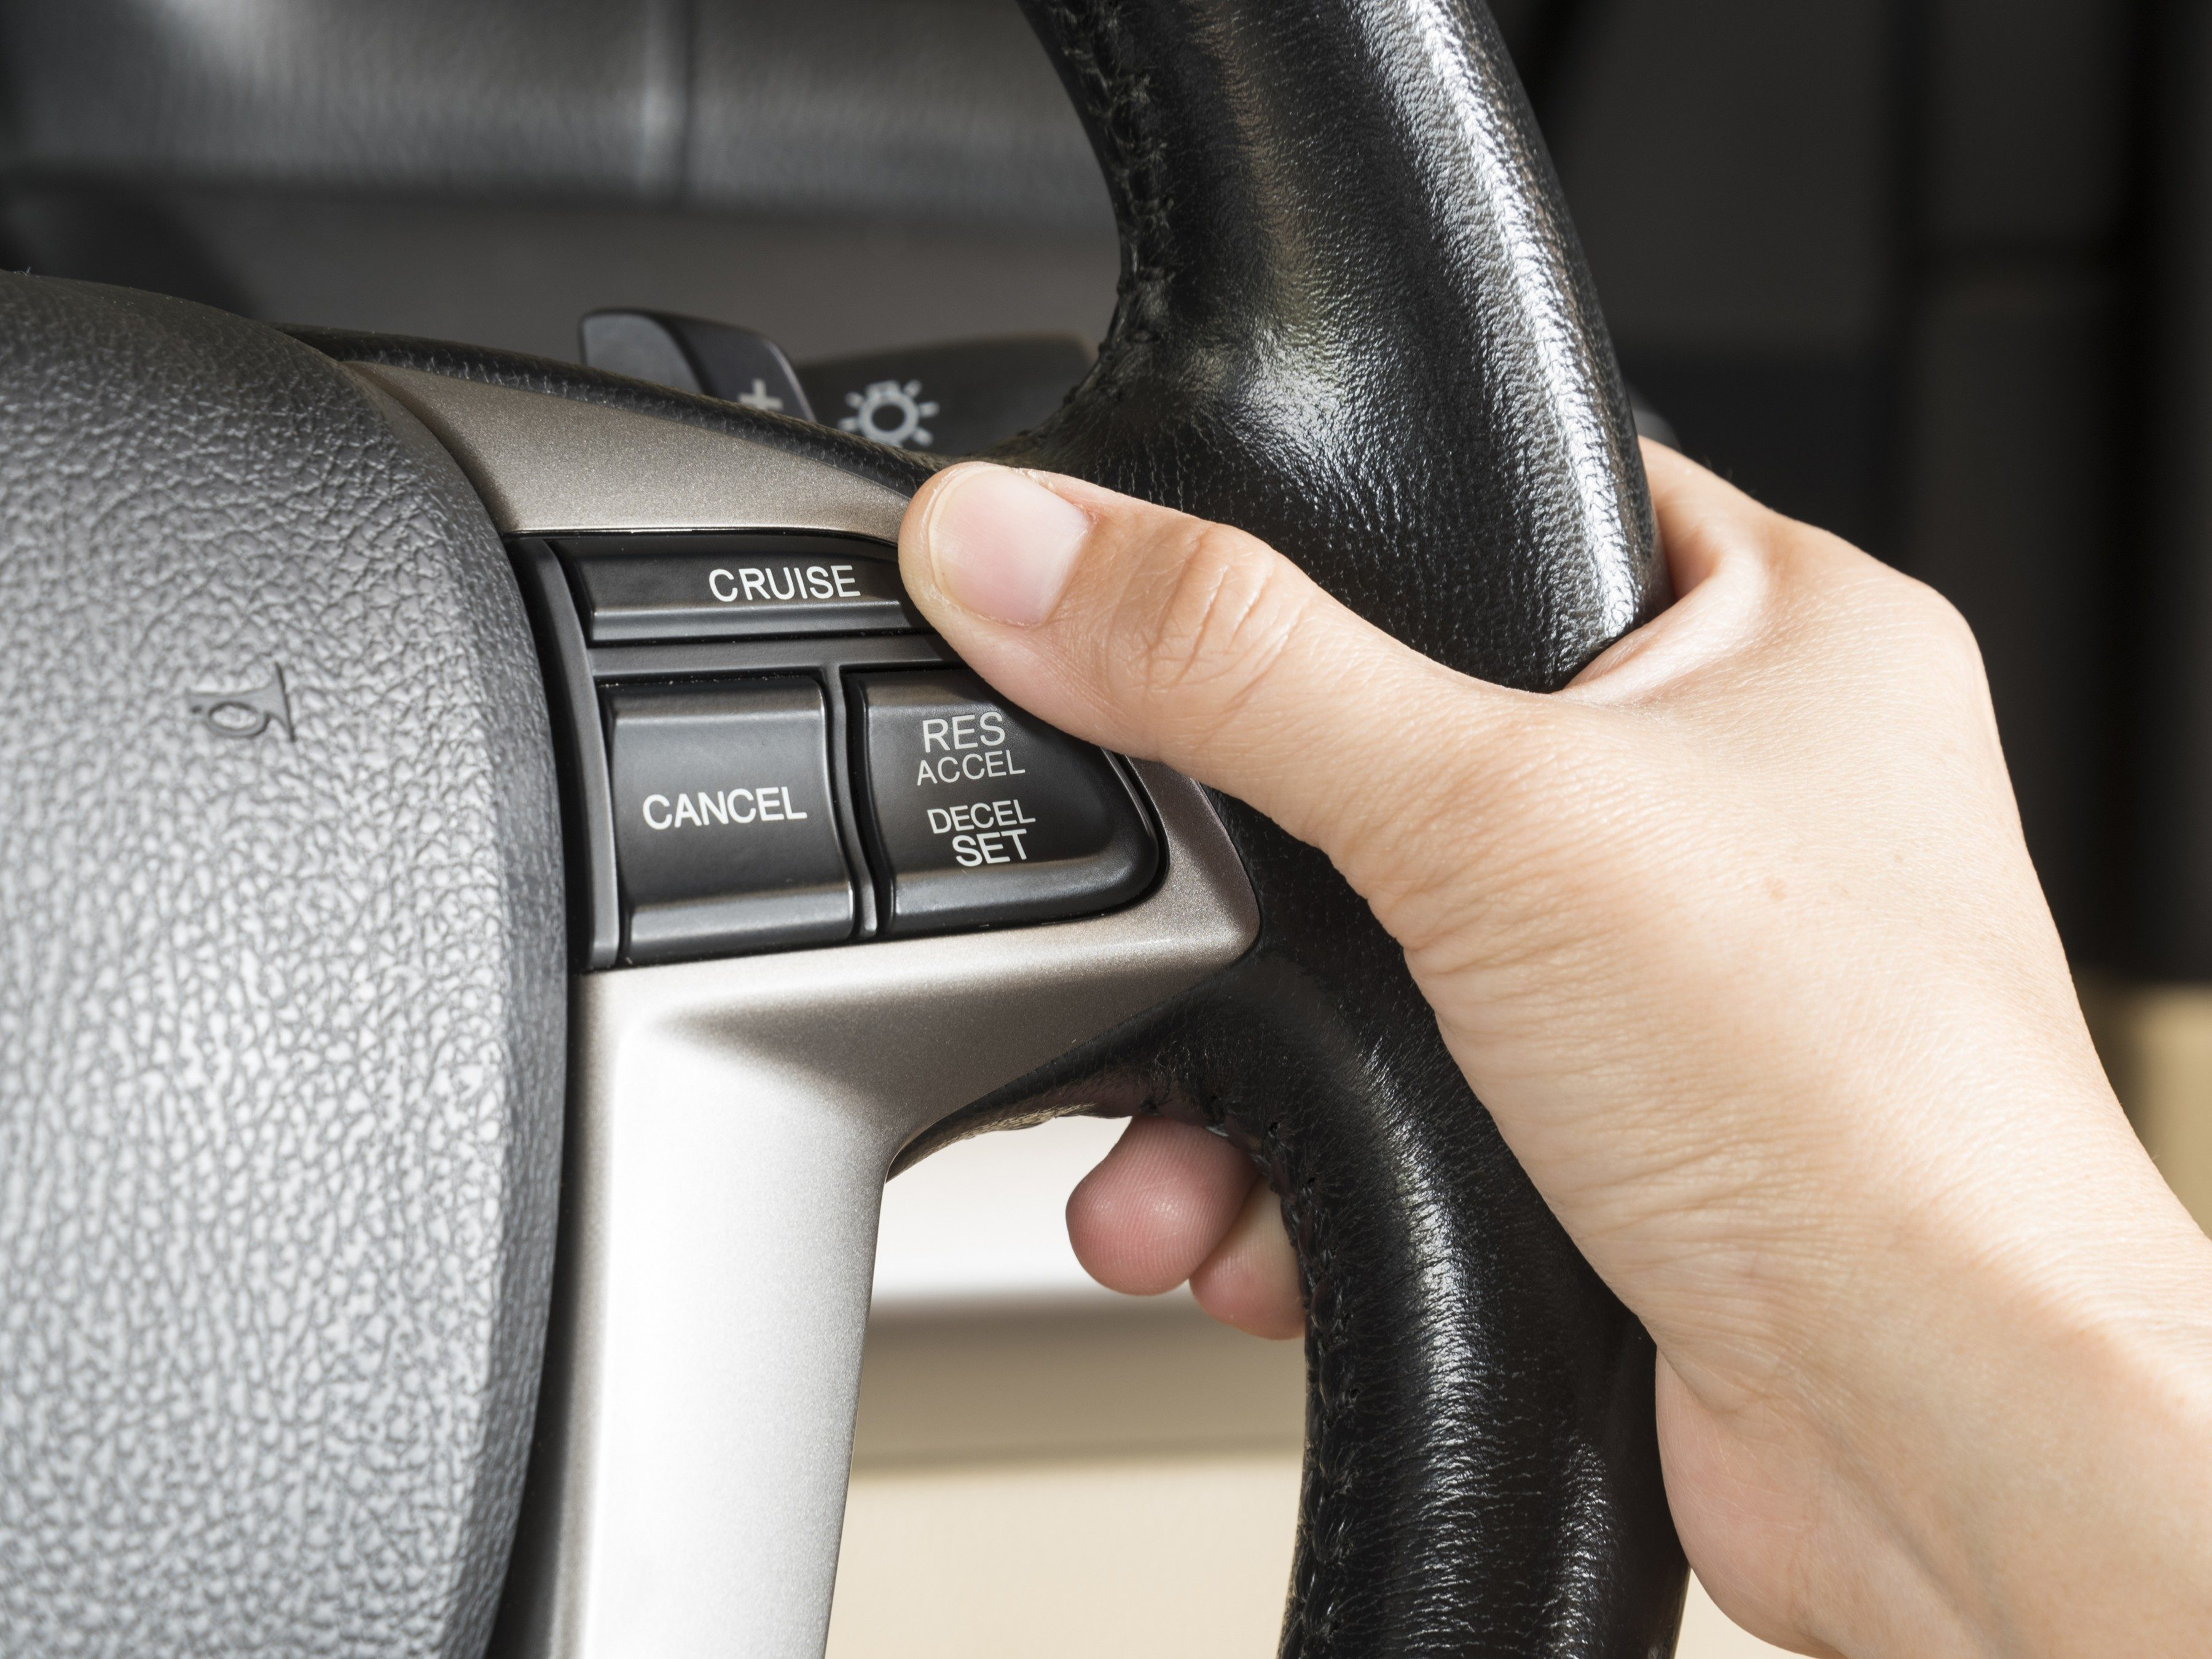 Driving tip #3: Use your car's cruise control to its full potential.